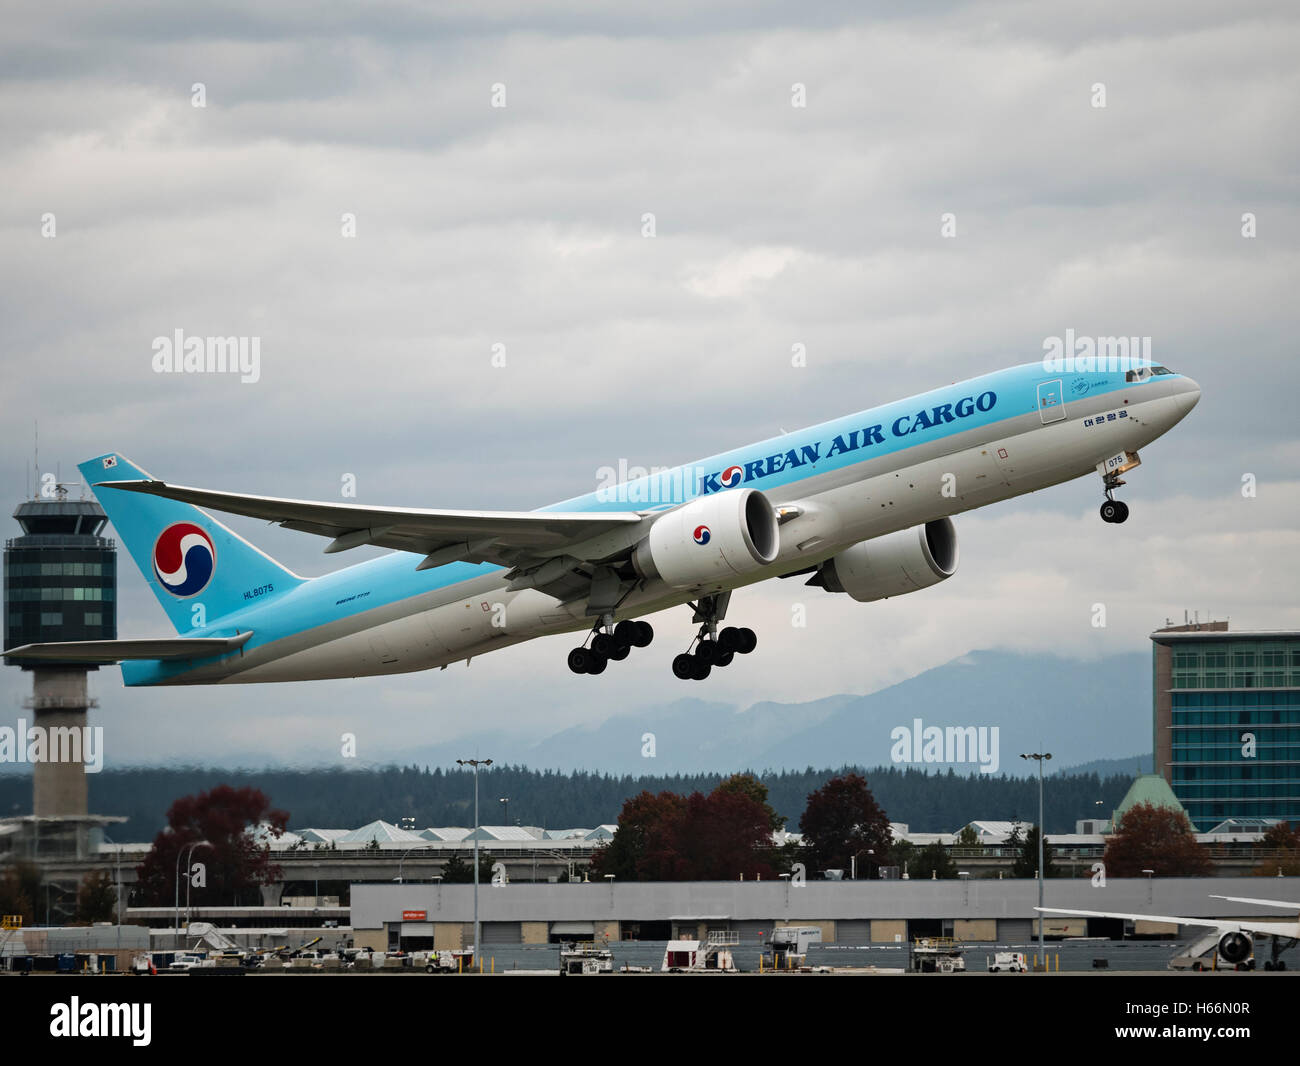 A Korean Air Cargo Boeing 777F HL8075 air cargo freighter taking off from Vancouver International Airport Canada - Stock Image